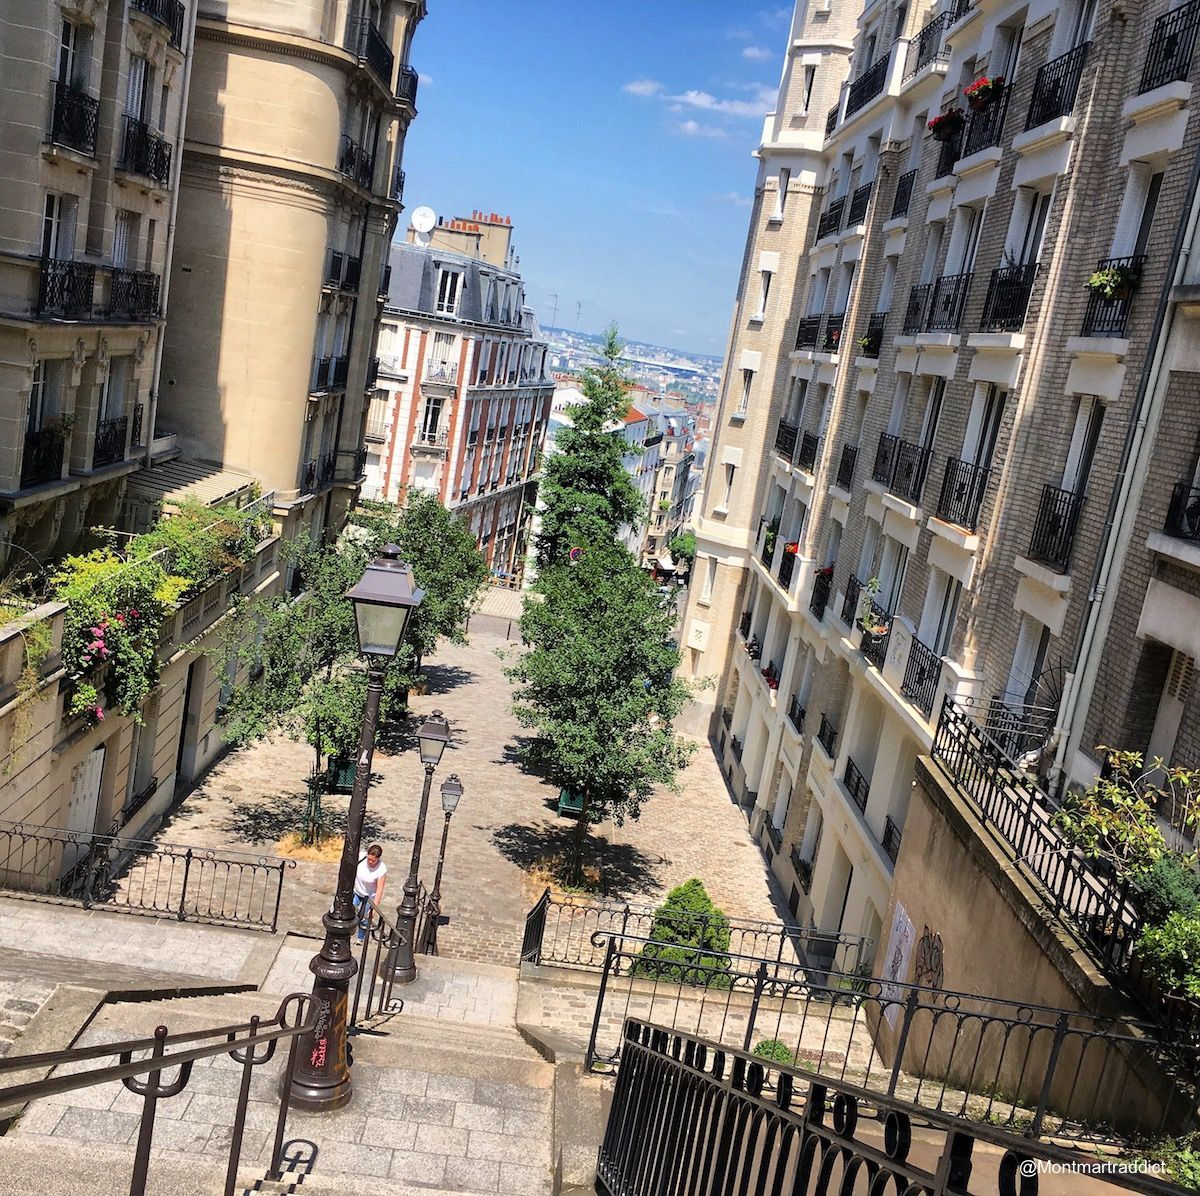 06. Sunny day in Montmartre, 75018